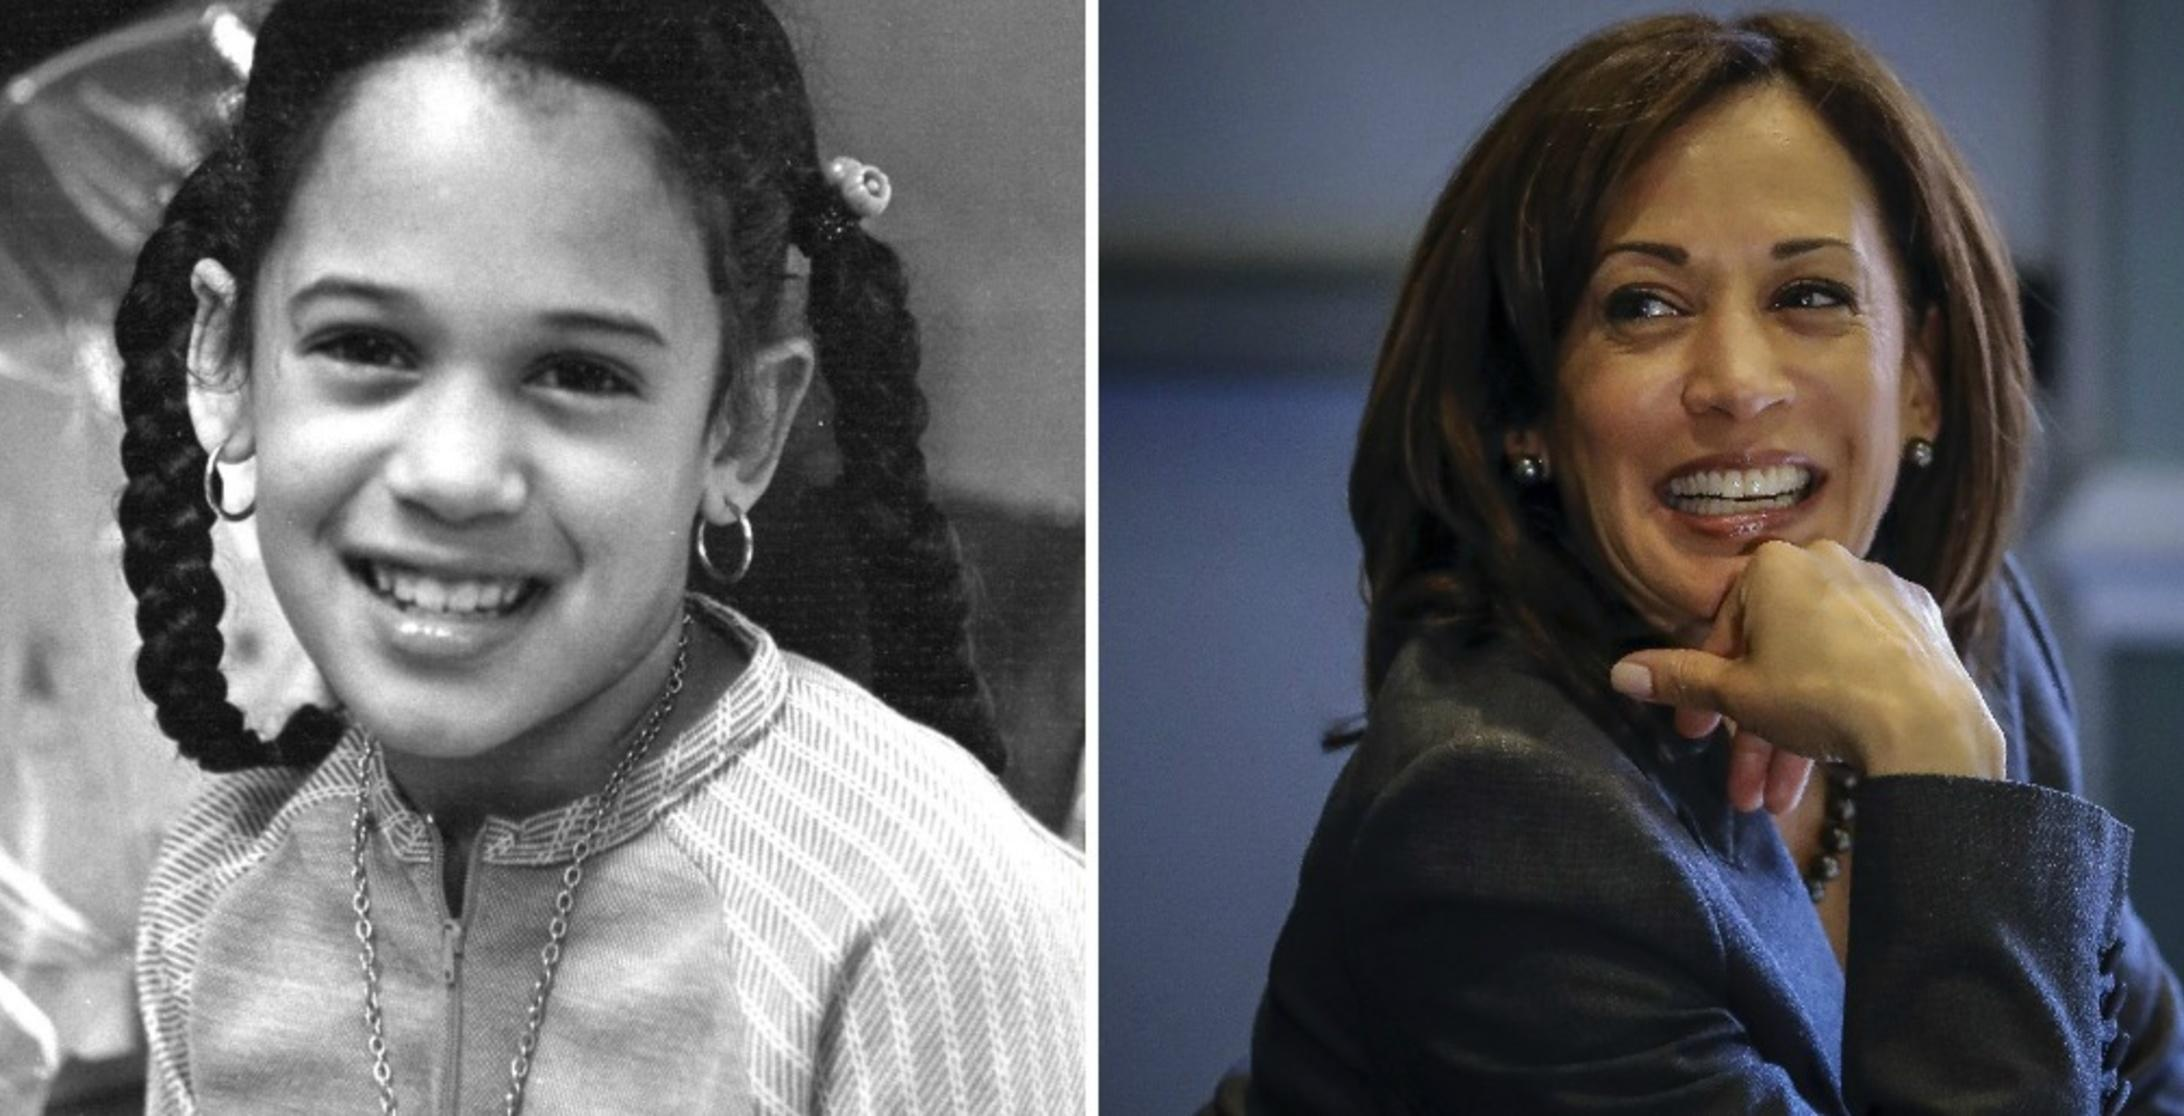 Rare Pictures Of Indian Origin Us Vice President Candidate Kamala Harris As A Child